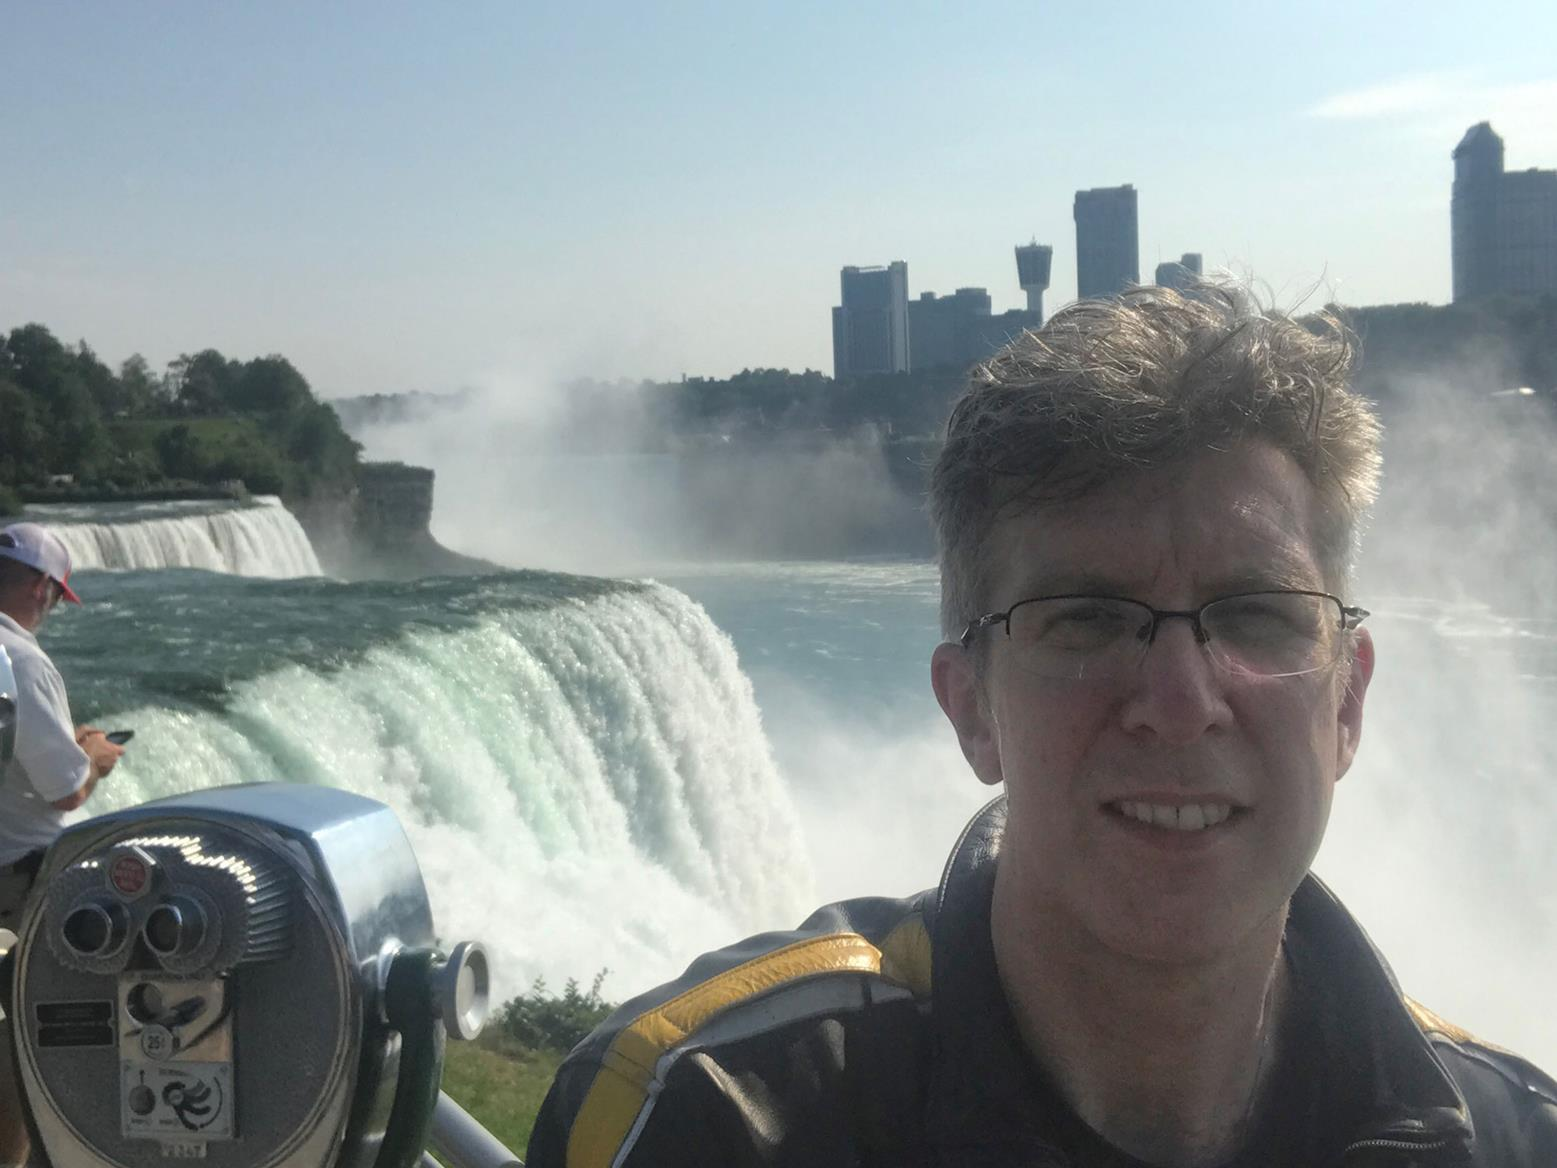 No pictures of the US border for obvious reasons, but here's proof Simon was in Canada - briefly - and visited Niagra Falls...